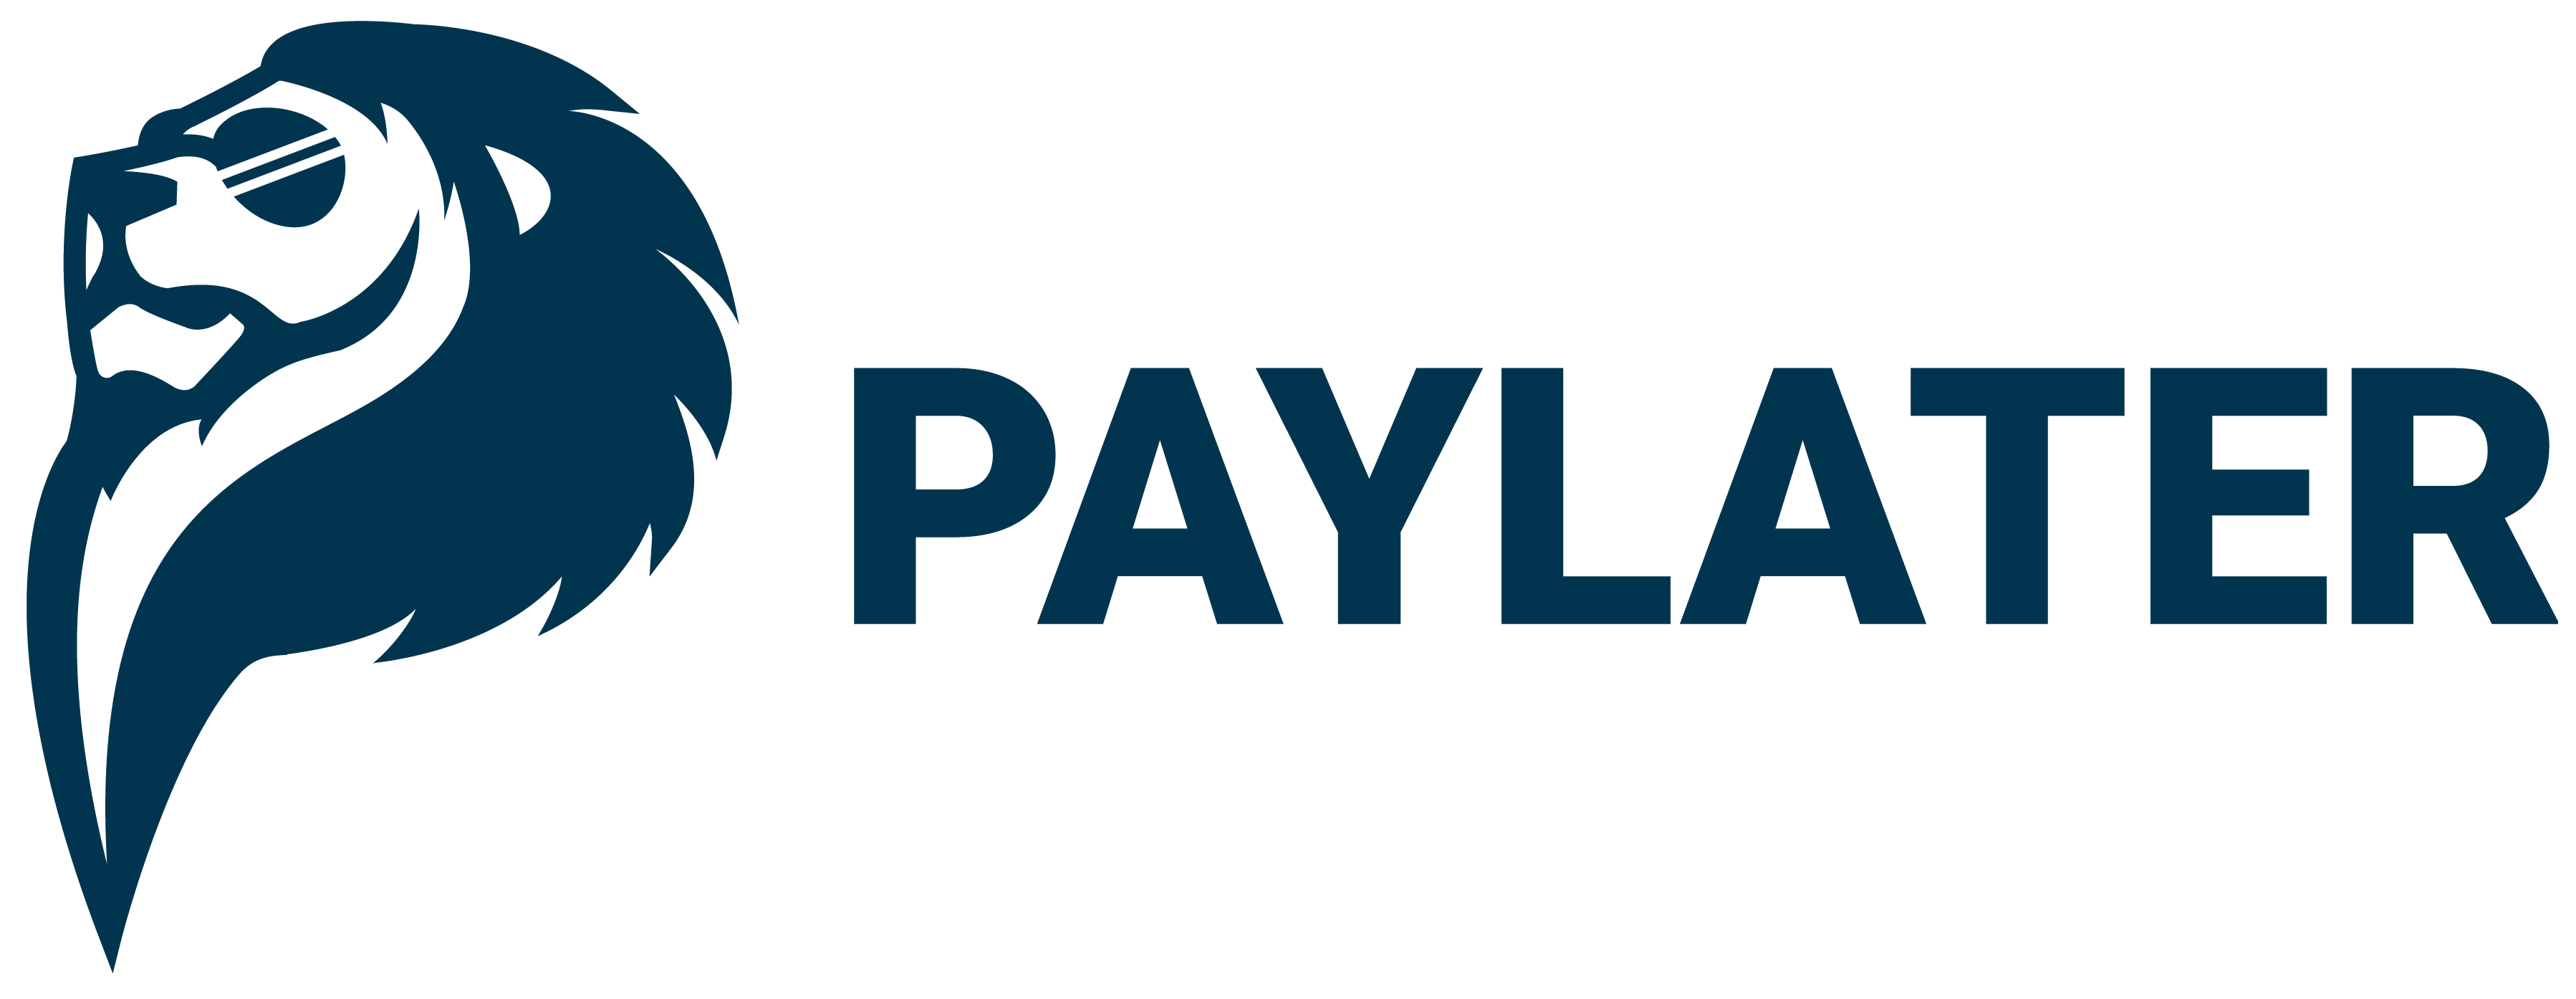 PAYLATER Malaysia Help Center home page